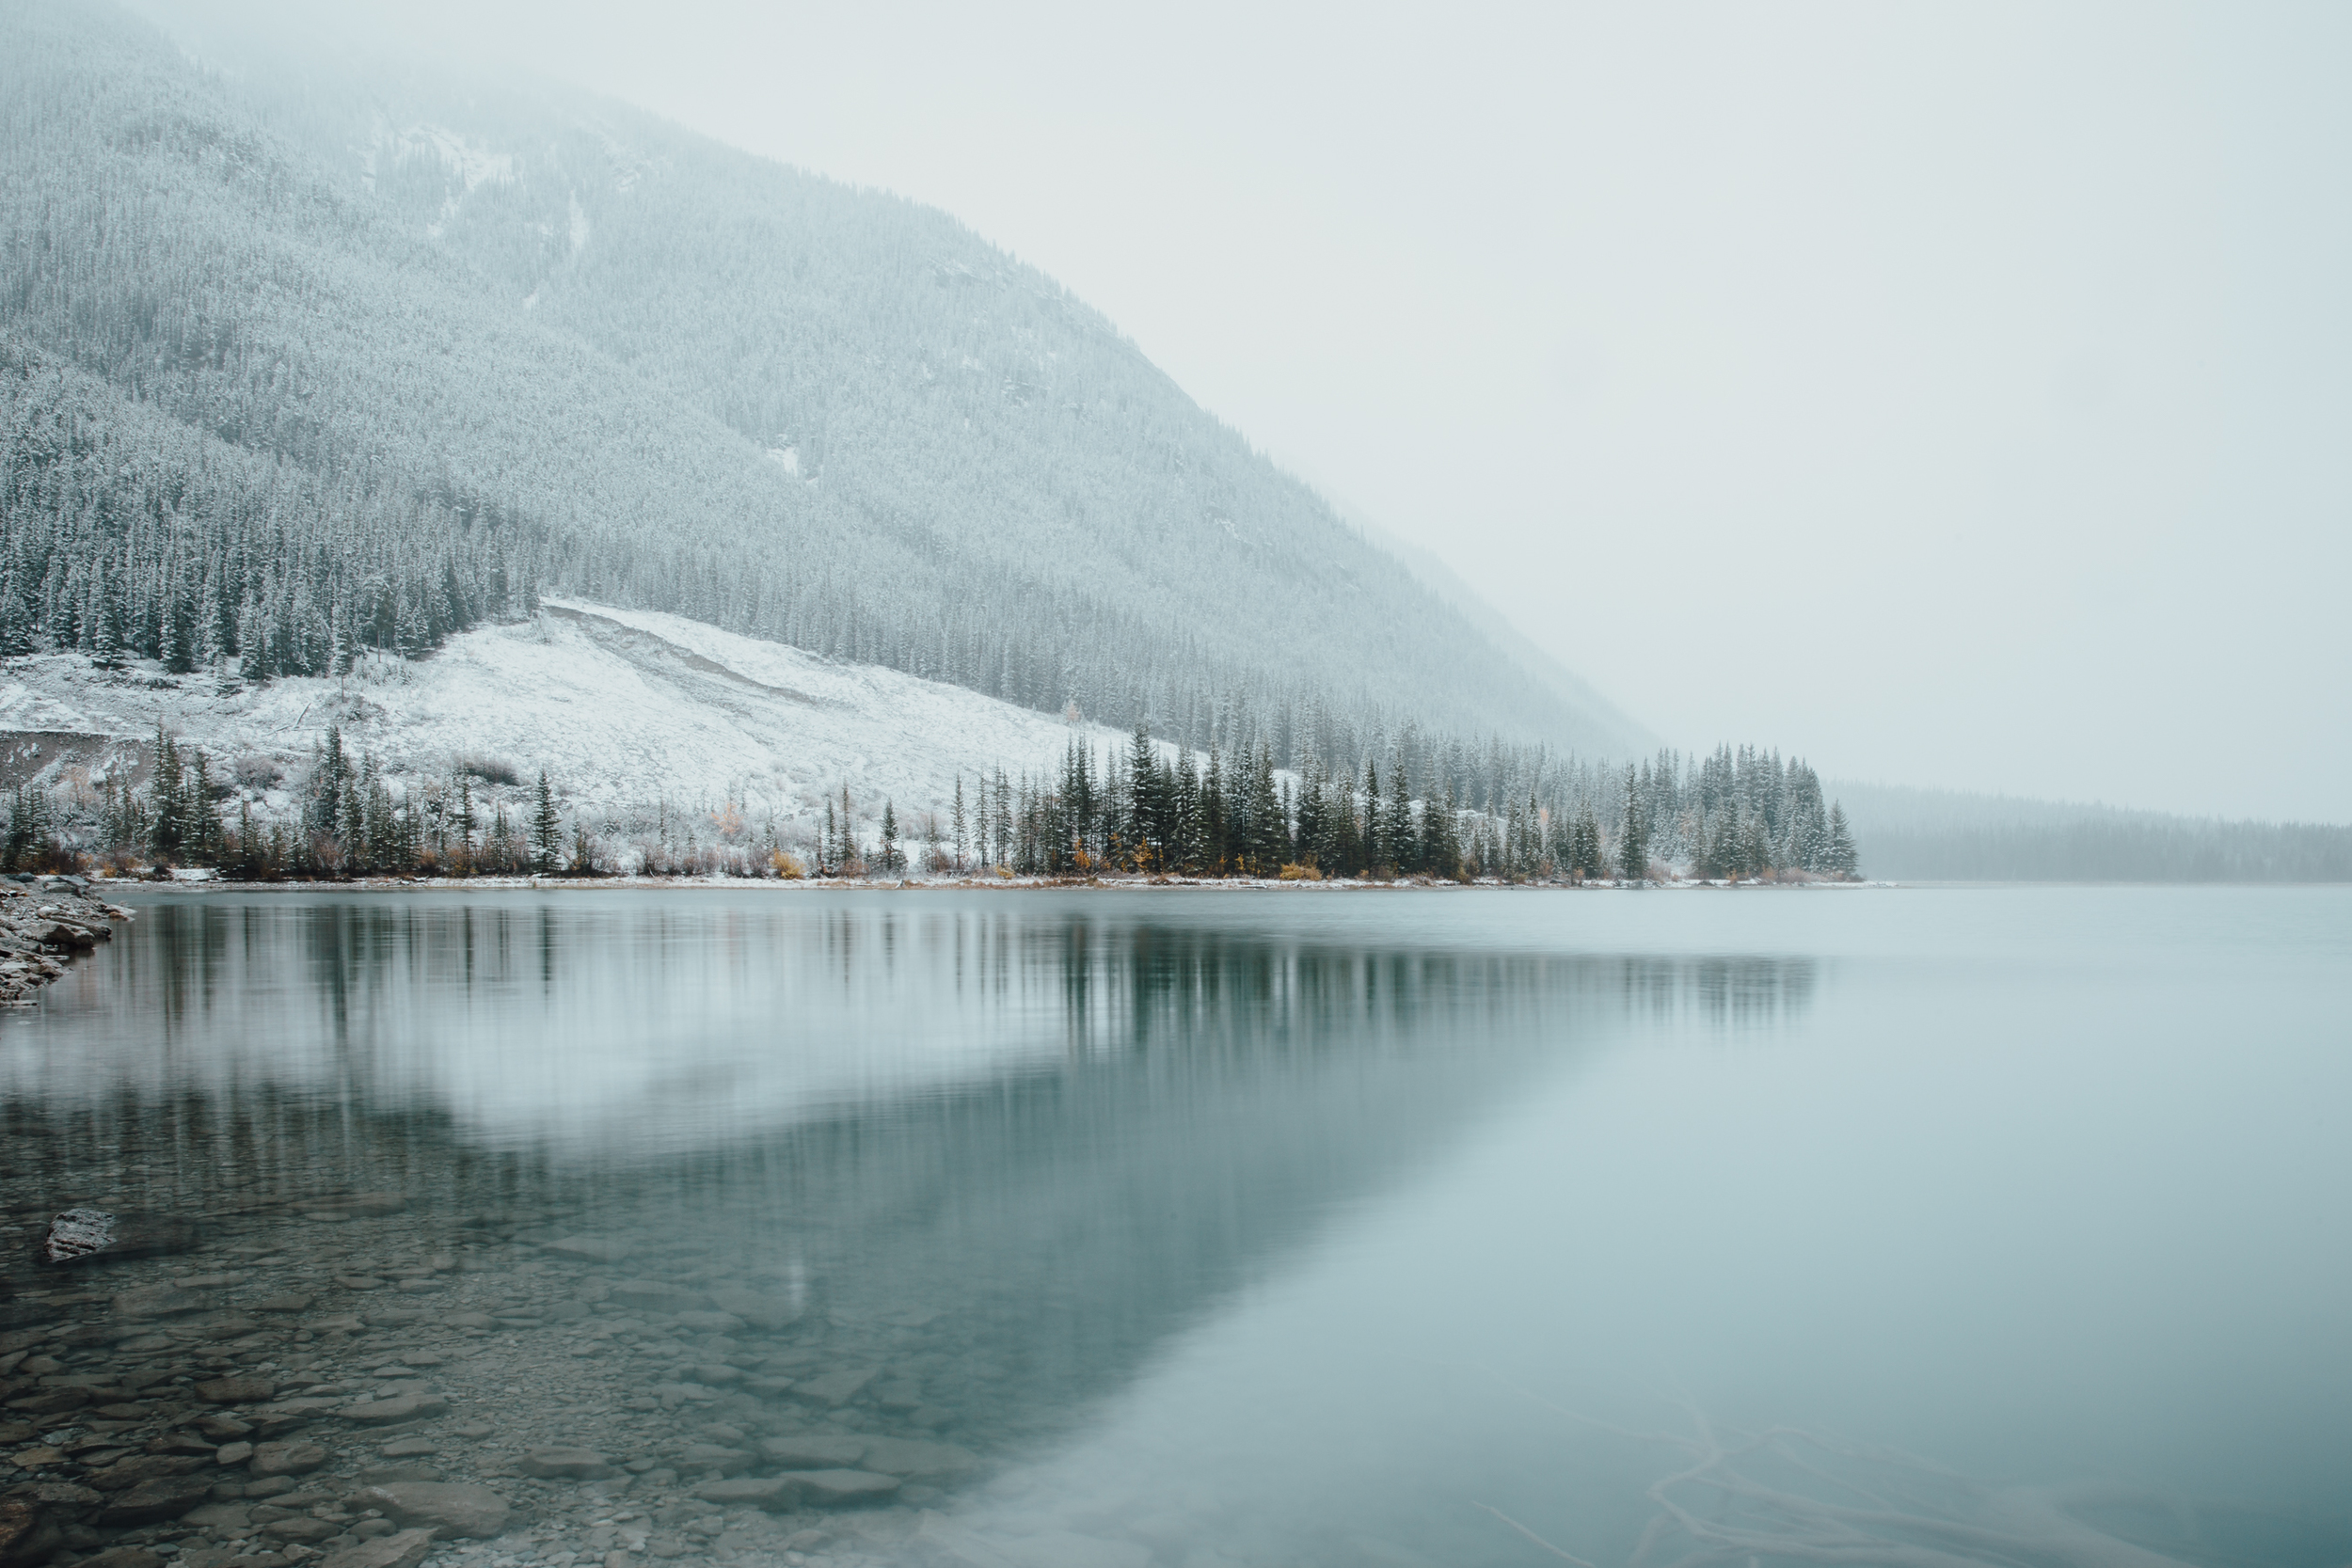 mikeseehagel-canada-canmore-lifestyle-photography-06.jpg